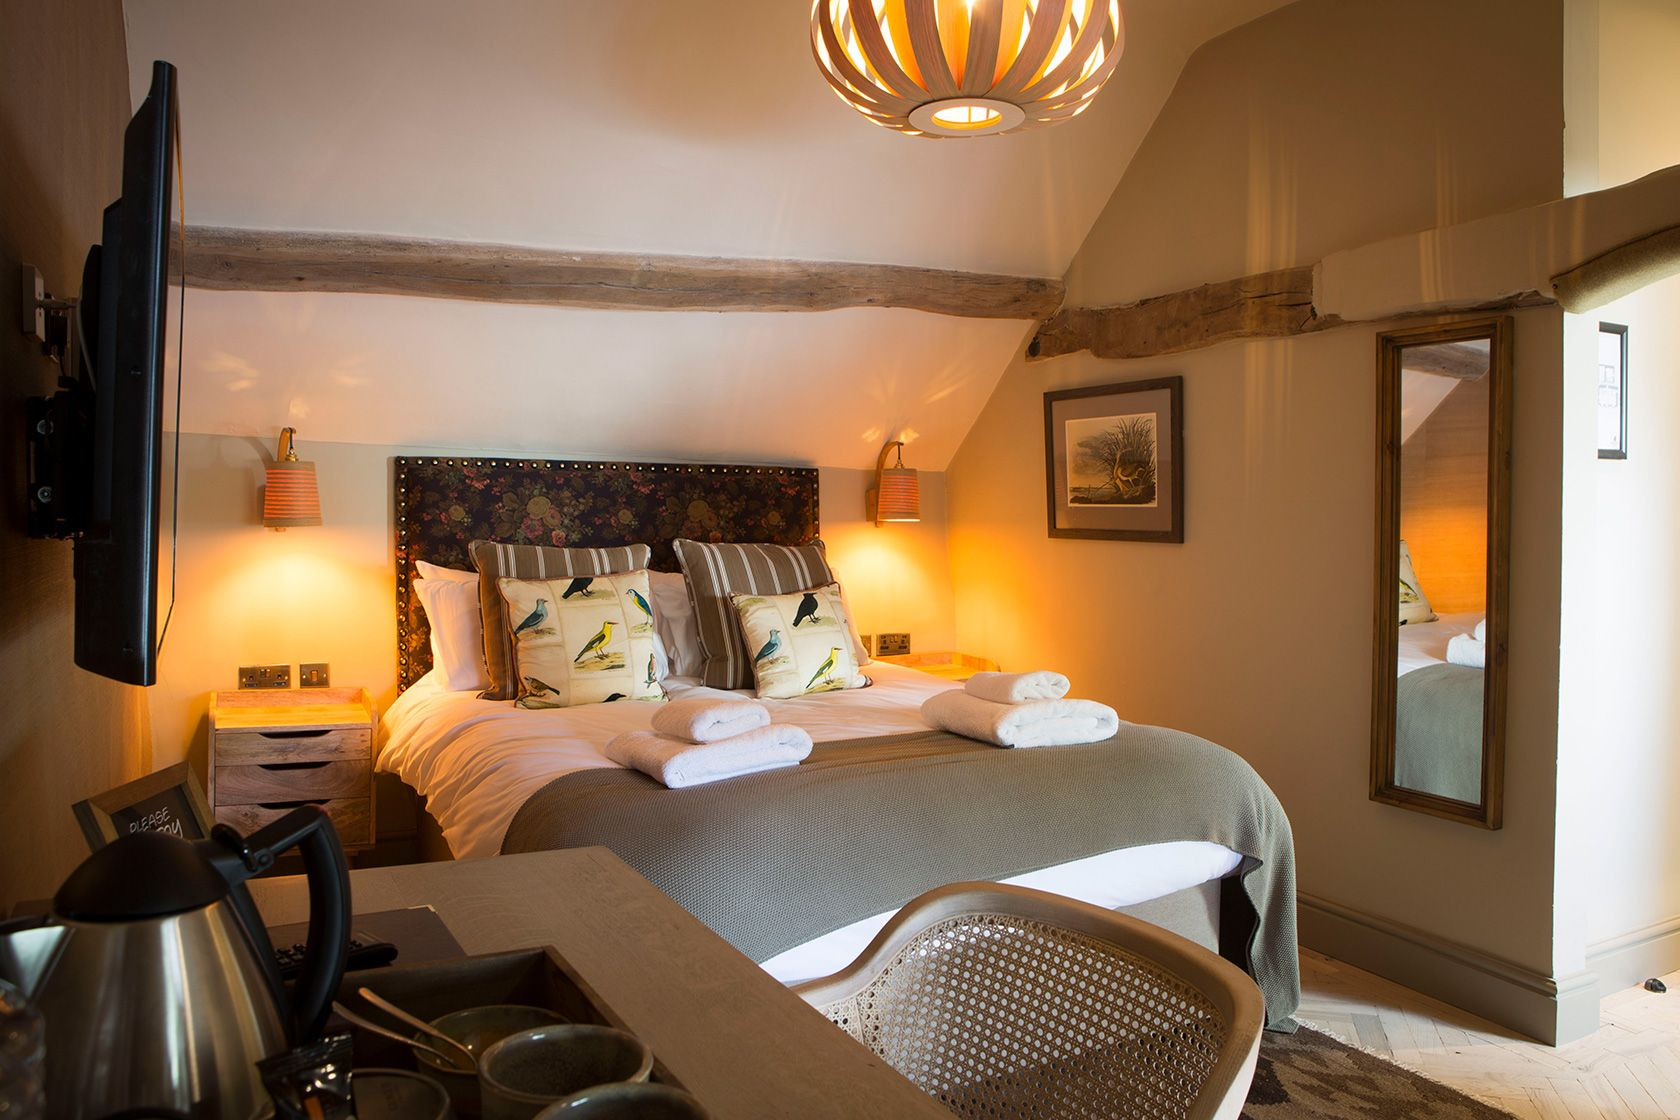 Our rear view room offers a great value stay at one of the best hotels and pubs near Snowdonia National Park